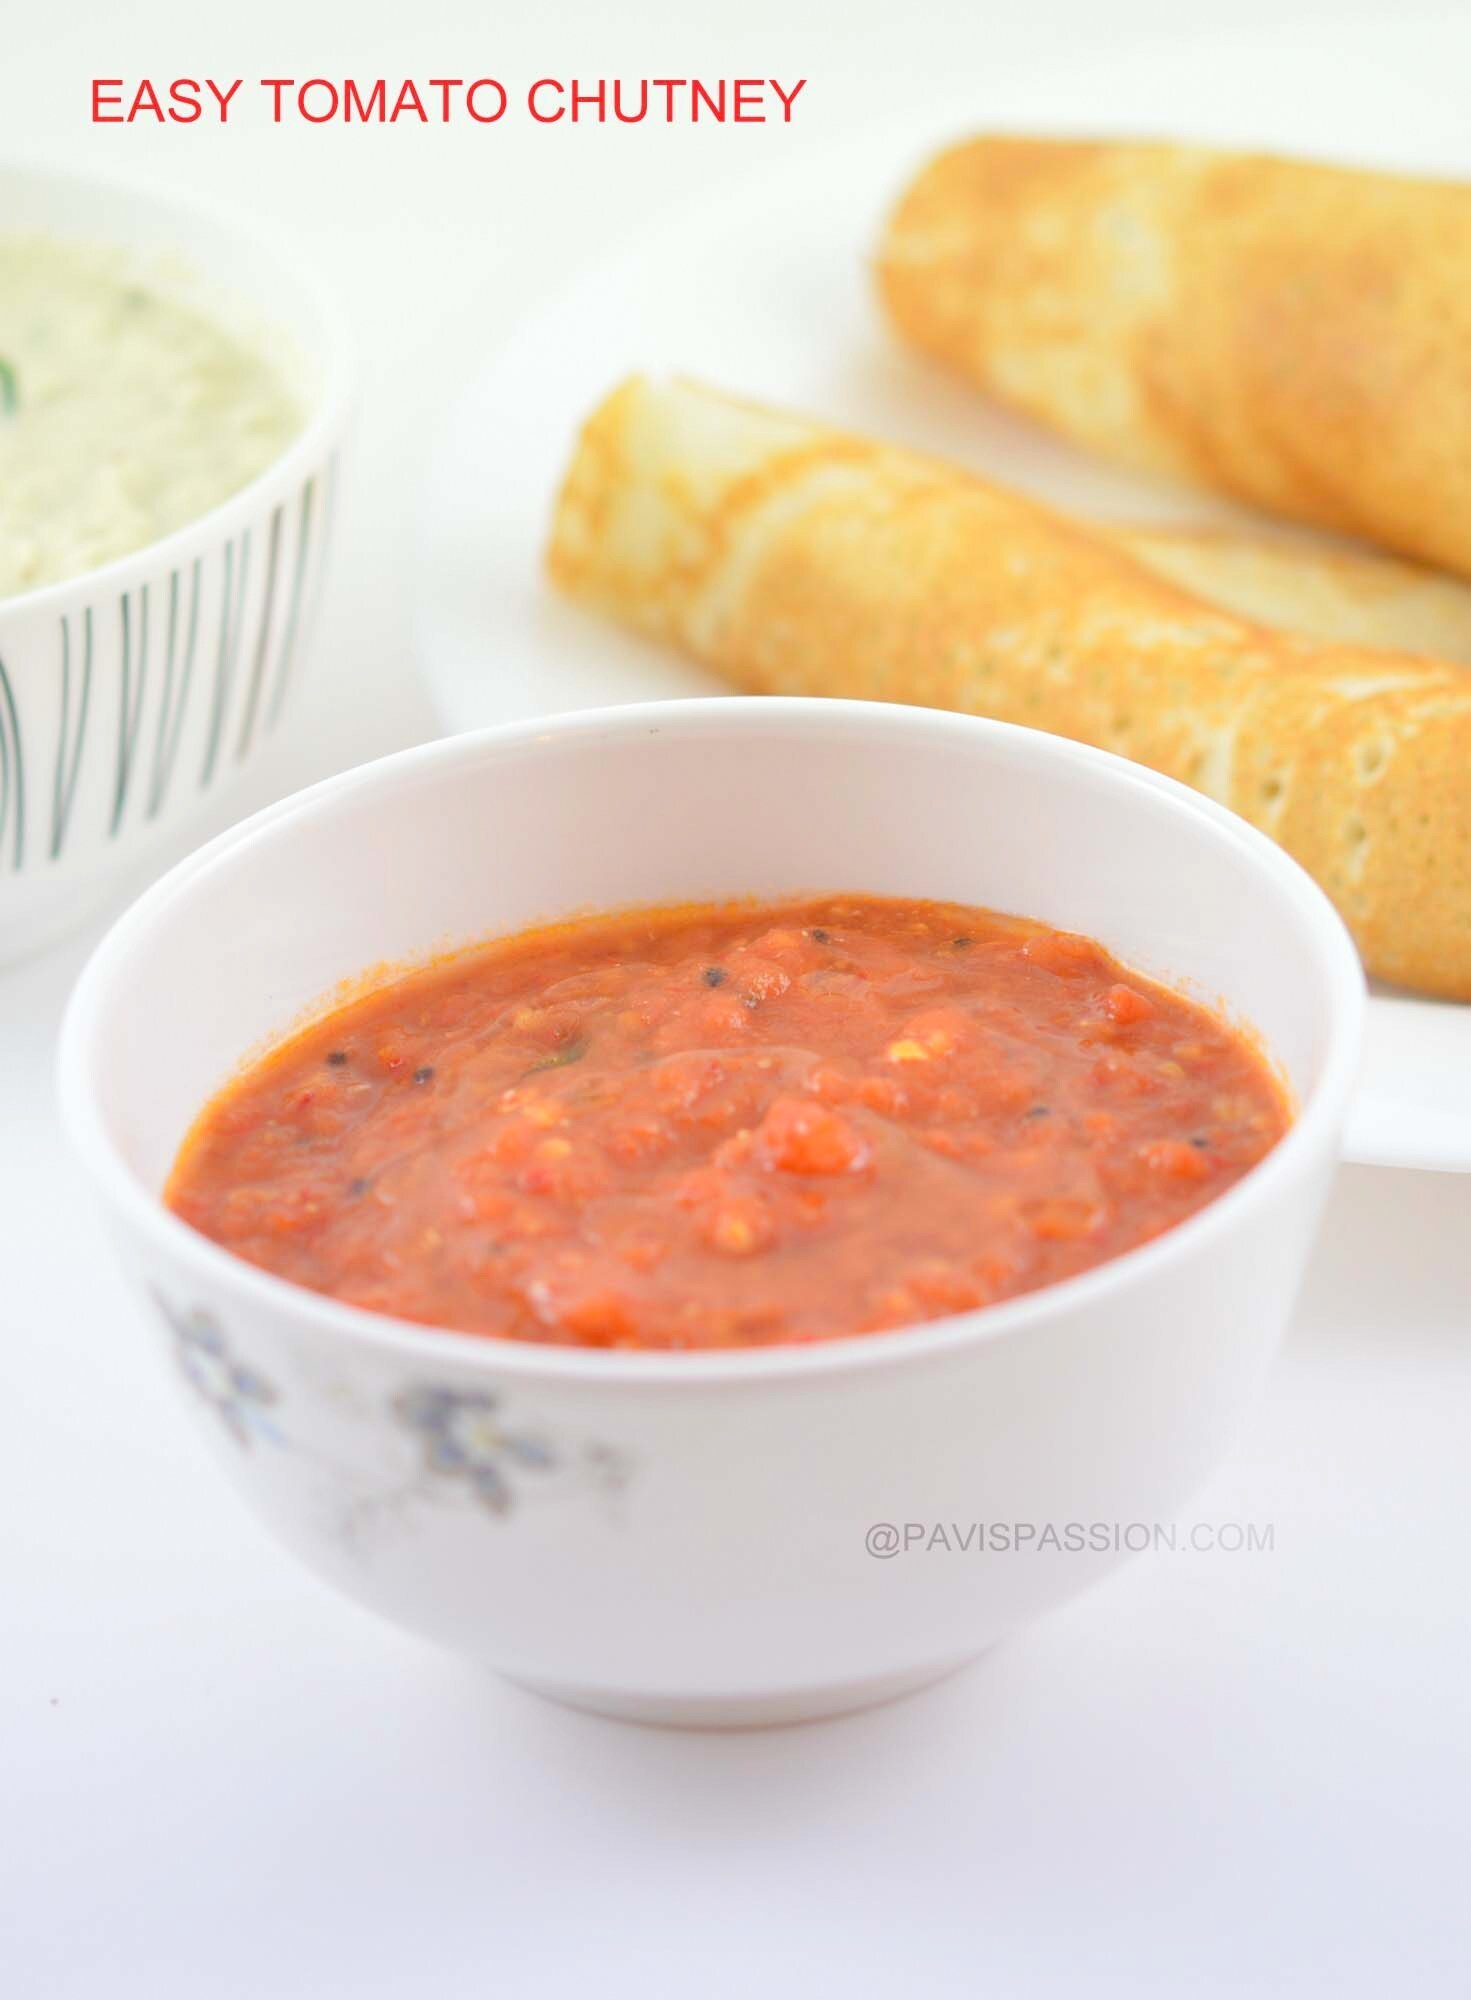 Quick Tomato Chutney, Chutney recipe for Idly Dosa, Thakkali Chutney, No Garlic No Onion Chutney